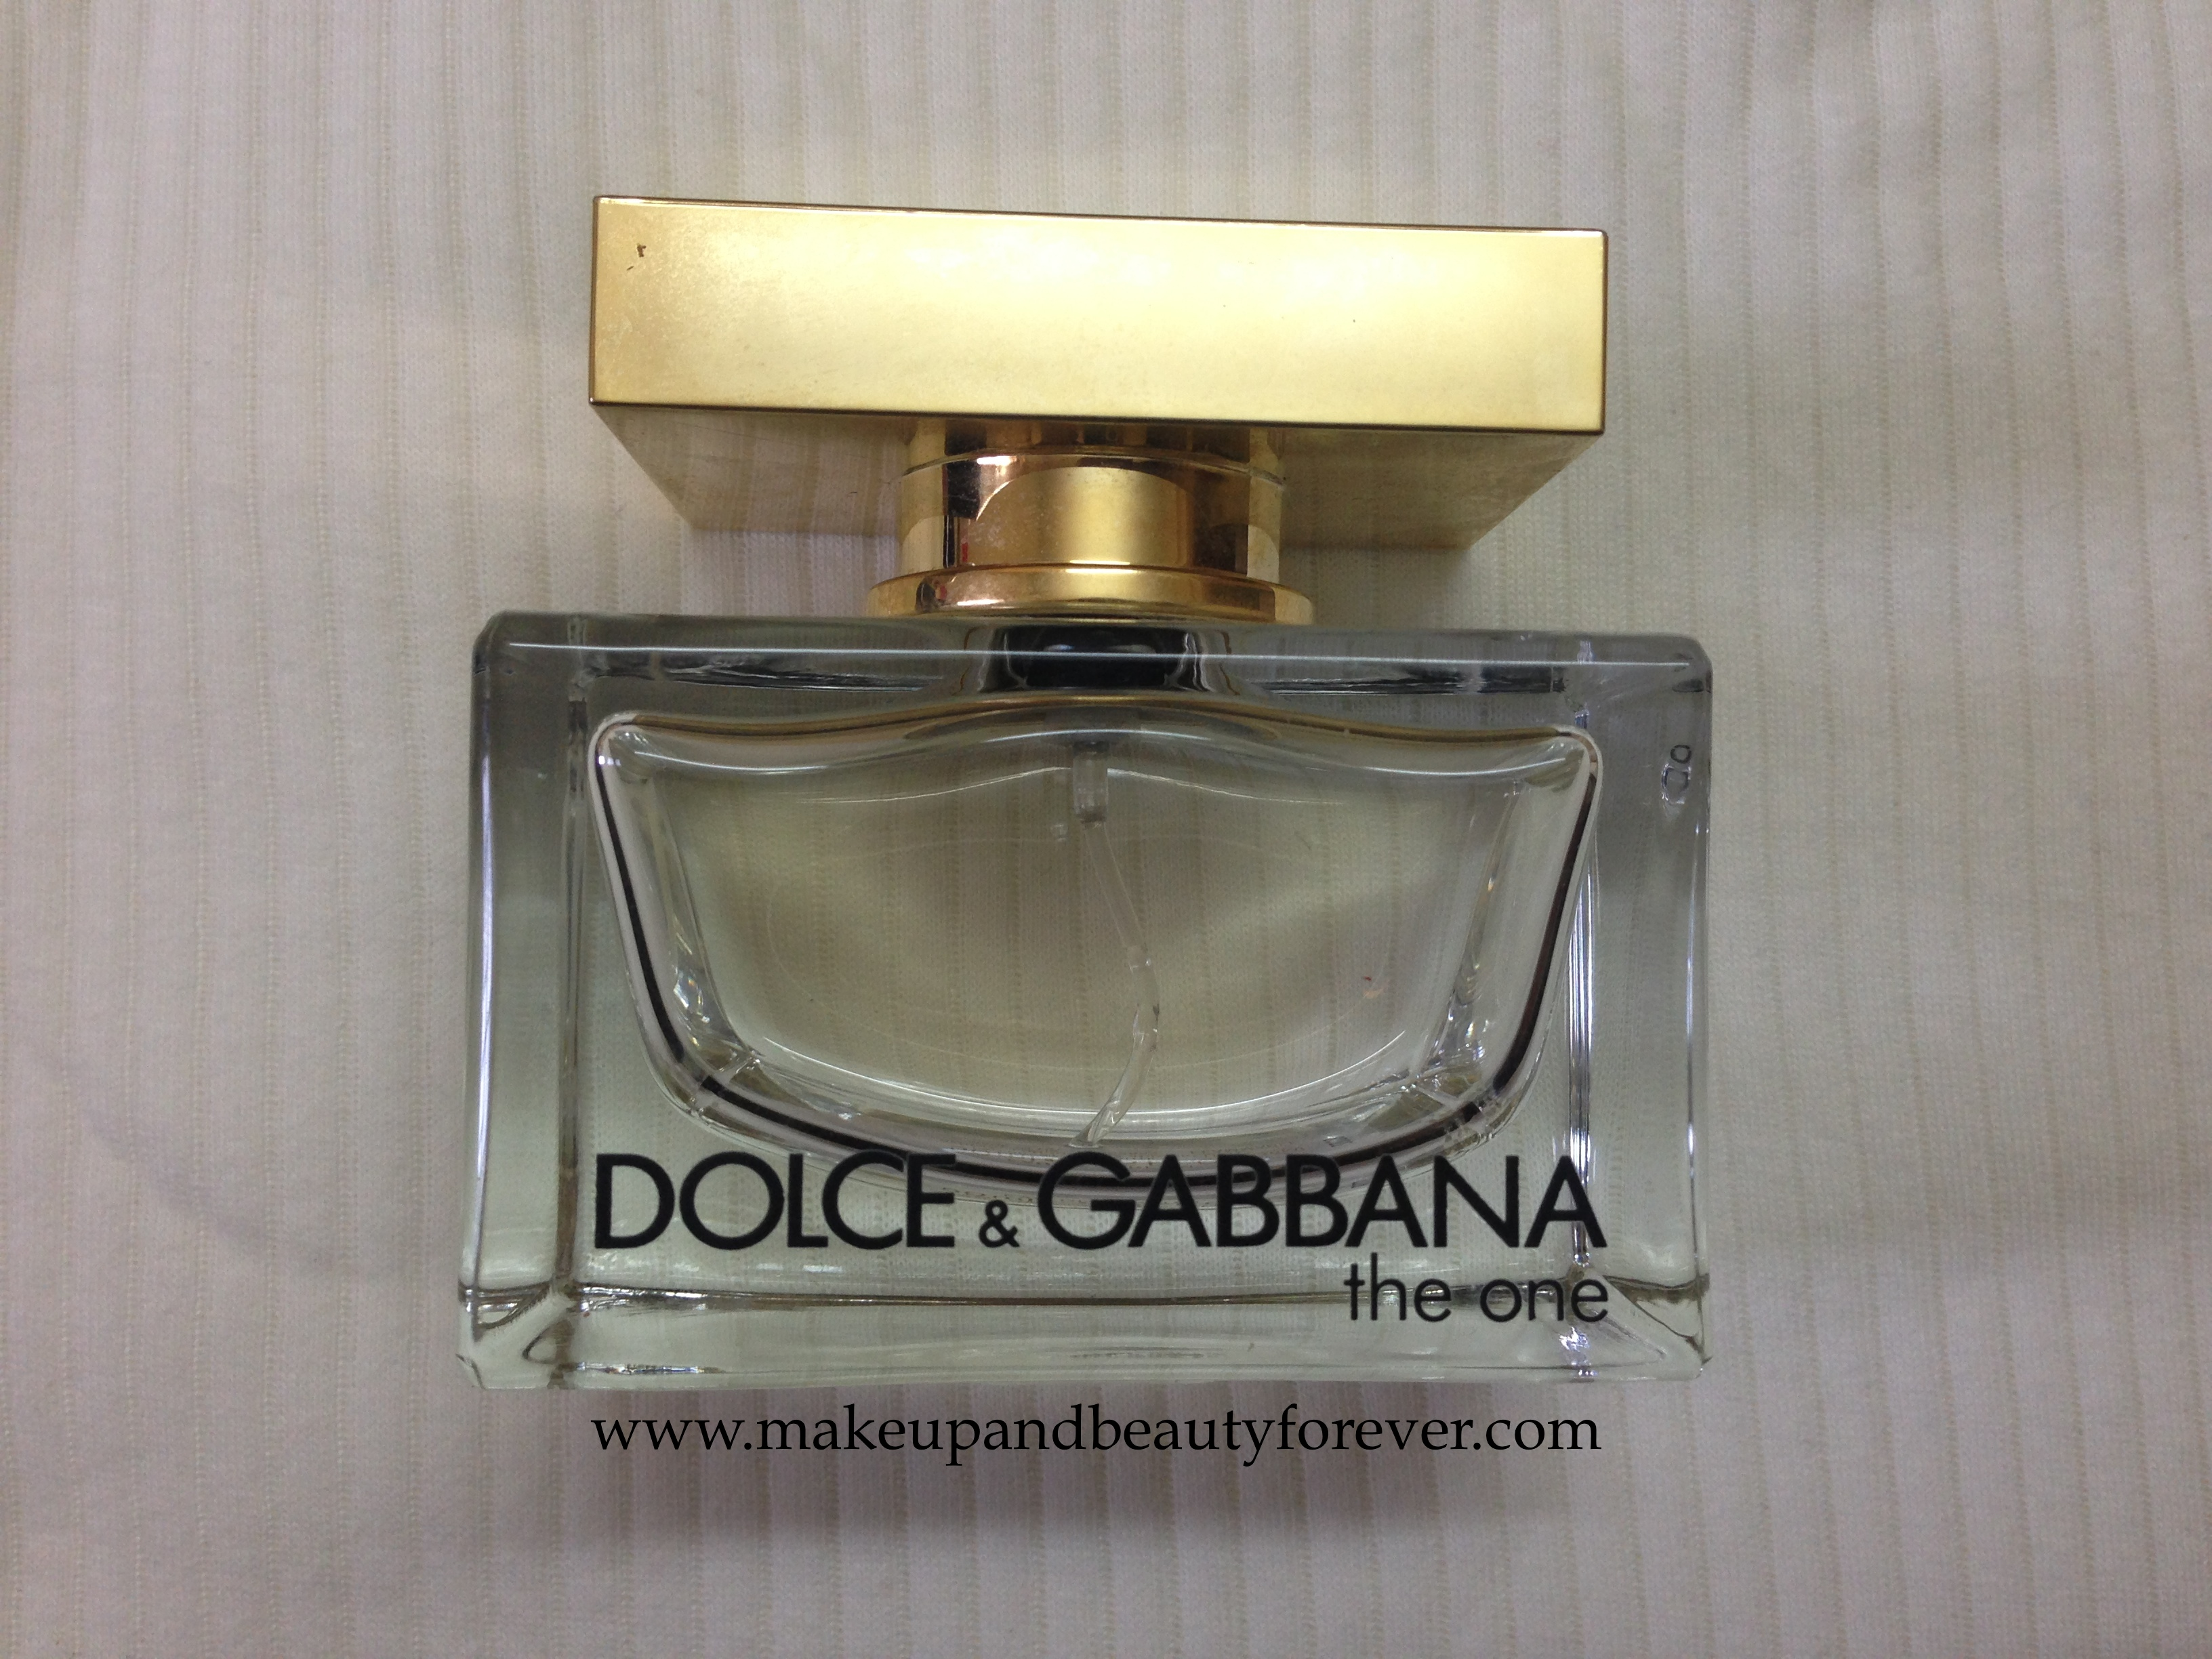 Dolce and gabbana the one perfume for women dolce and gabbana intense